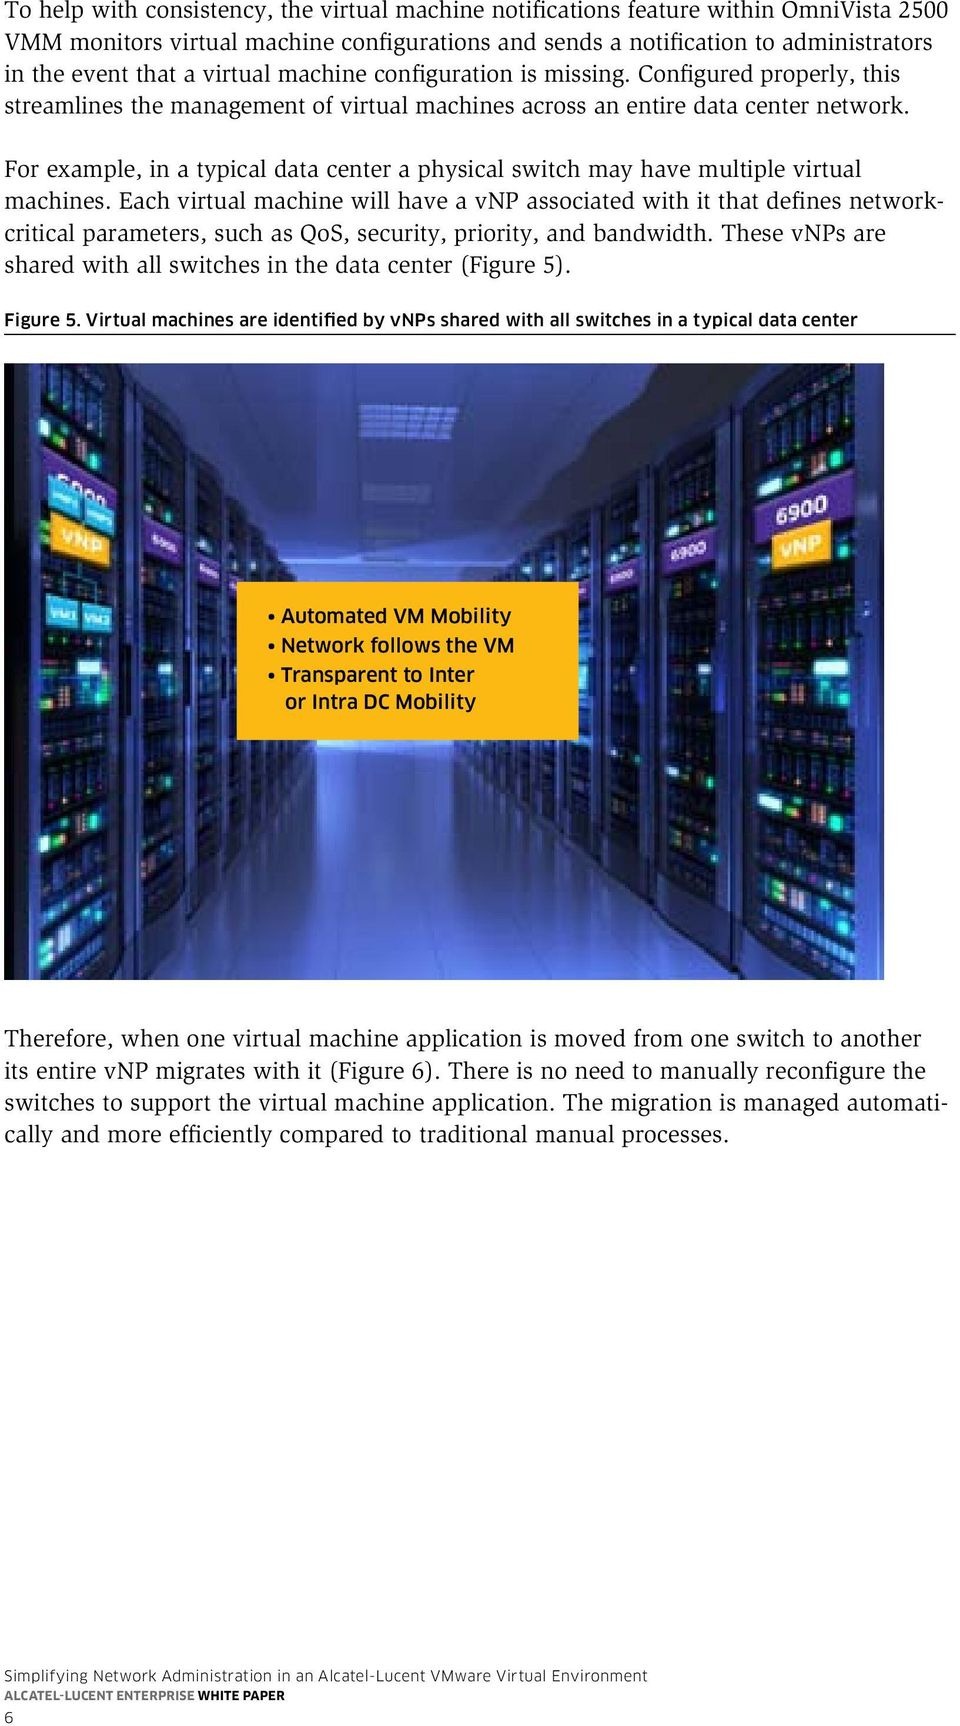 For example, in a typical data center a physical switch may have multiple virtual machines.